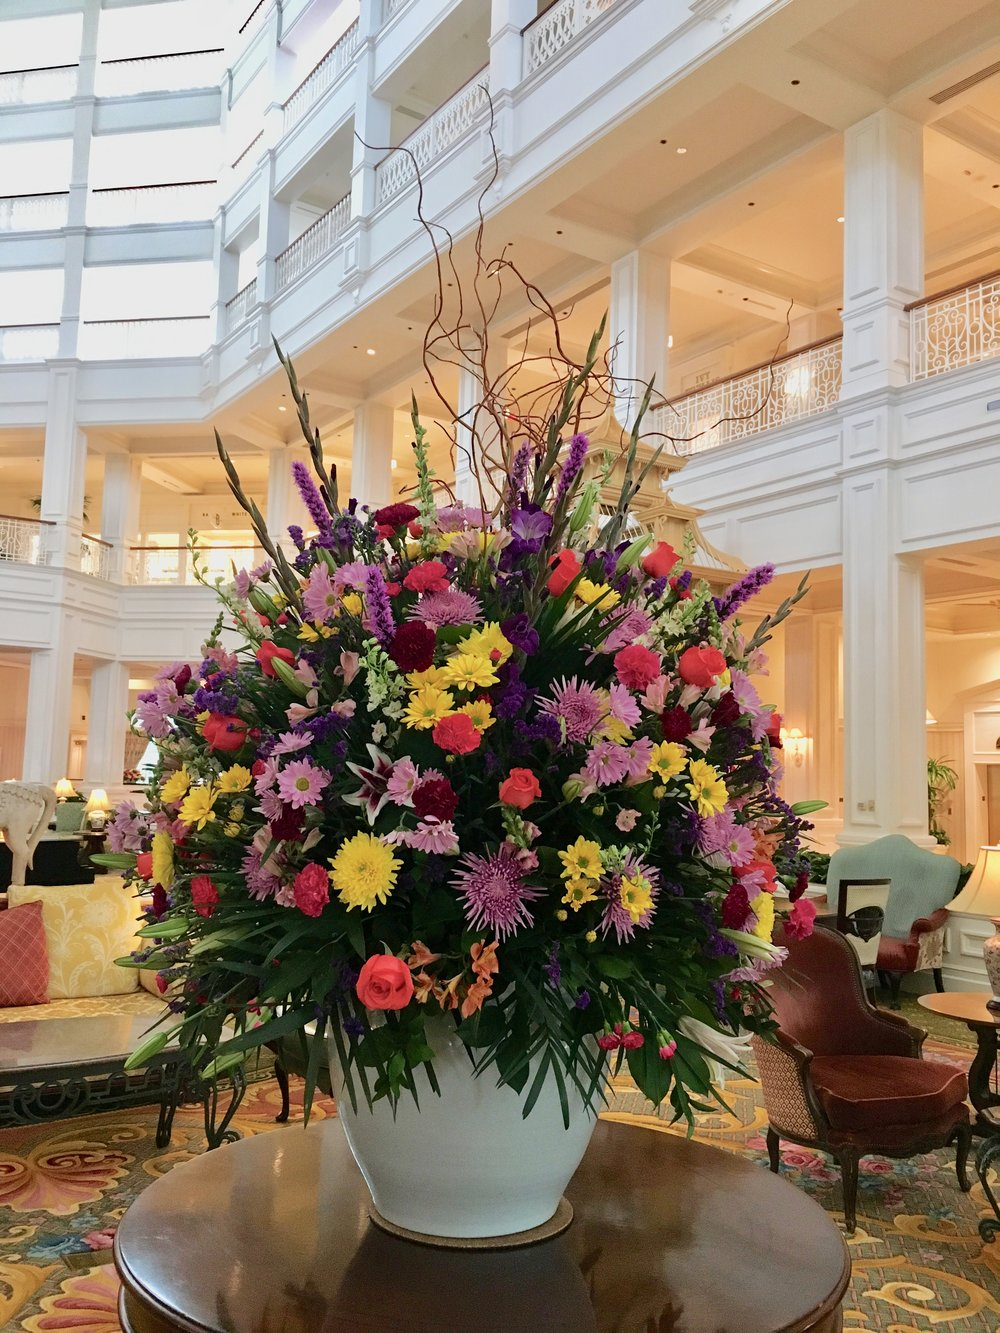 grand-floridian-resort-flowers.jpg